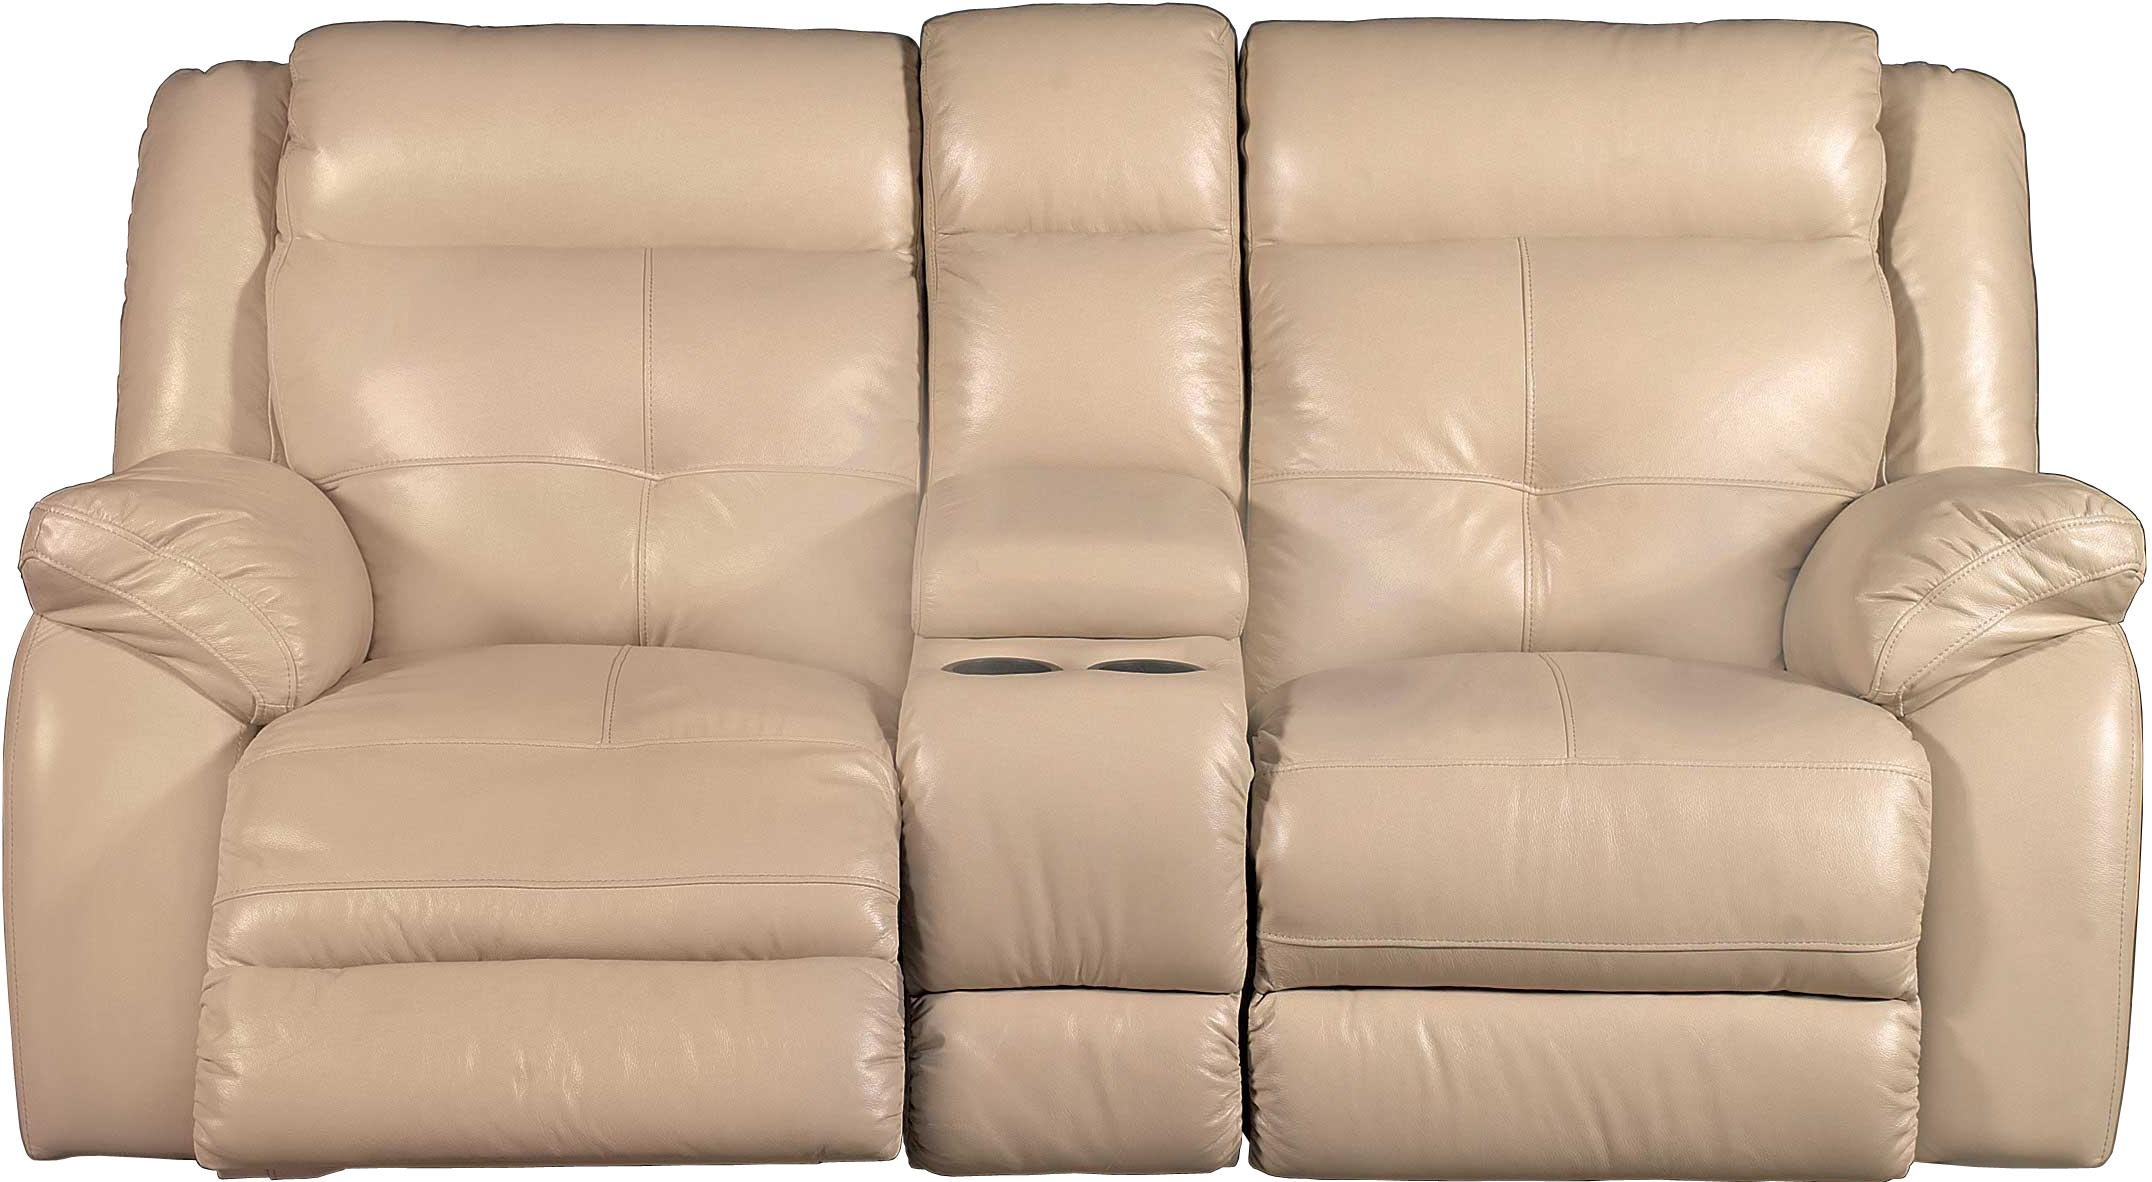 Tan Leather Match Power Reclining Sofa Manual Gliding Loveseat Nuveau Rc Willey Furniture